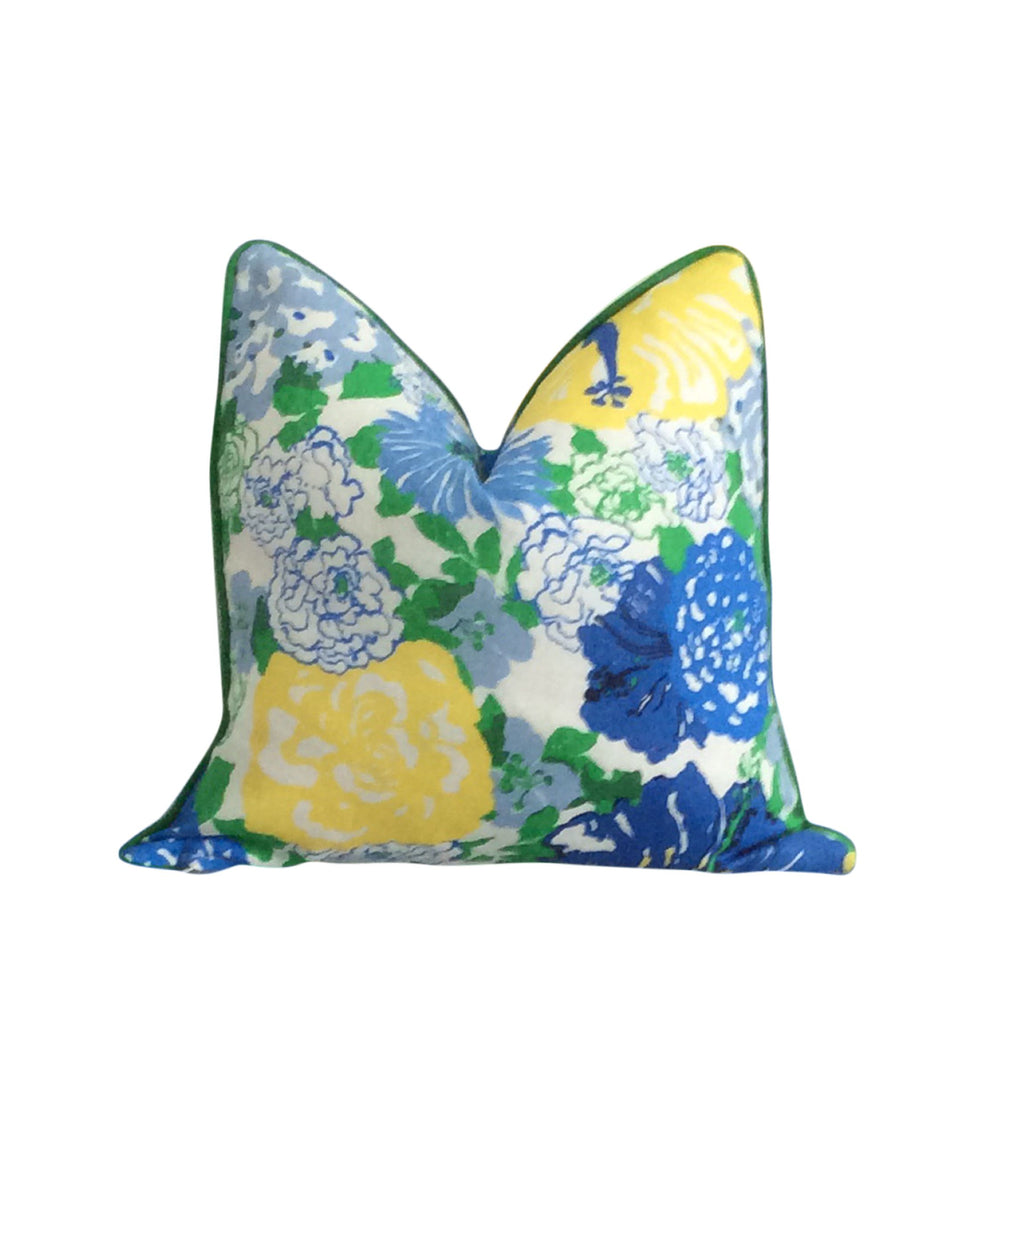 Lilly Pulitzer Heritage Floral Fabric Blue Pillow Cover by Lilly and Co.